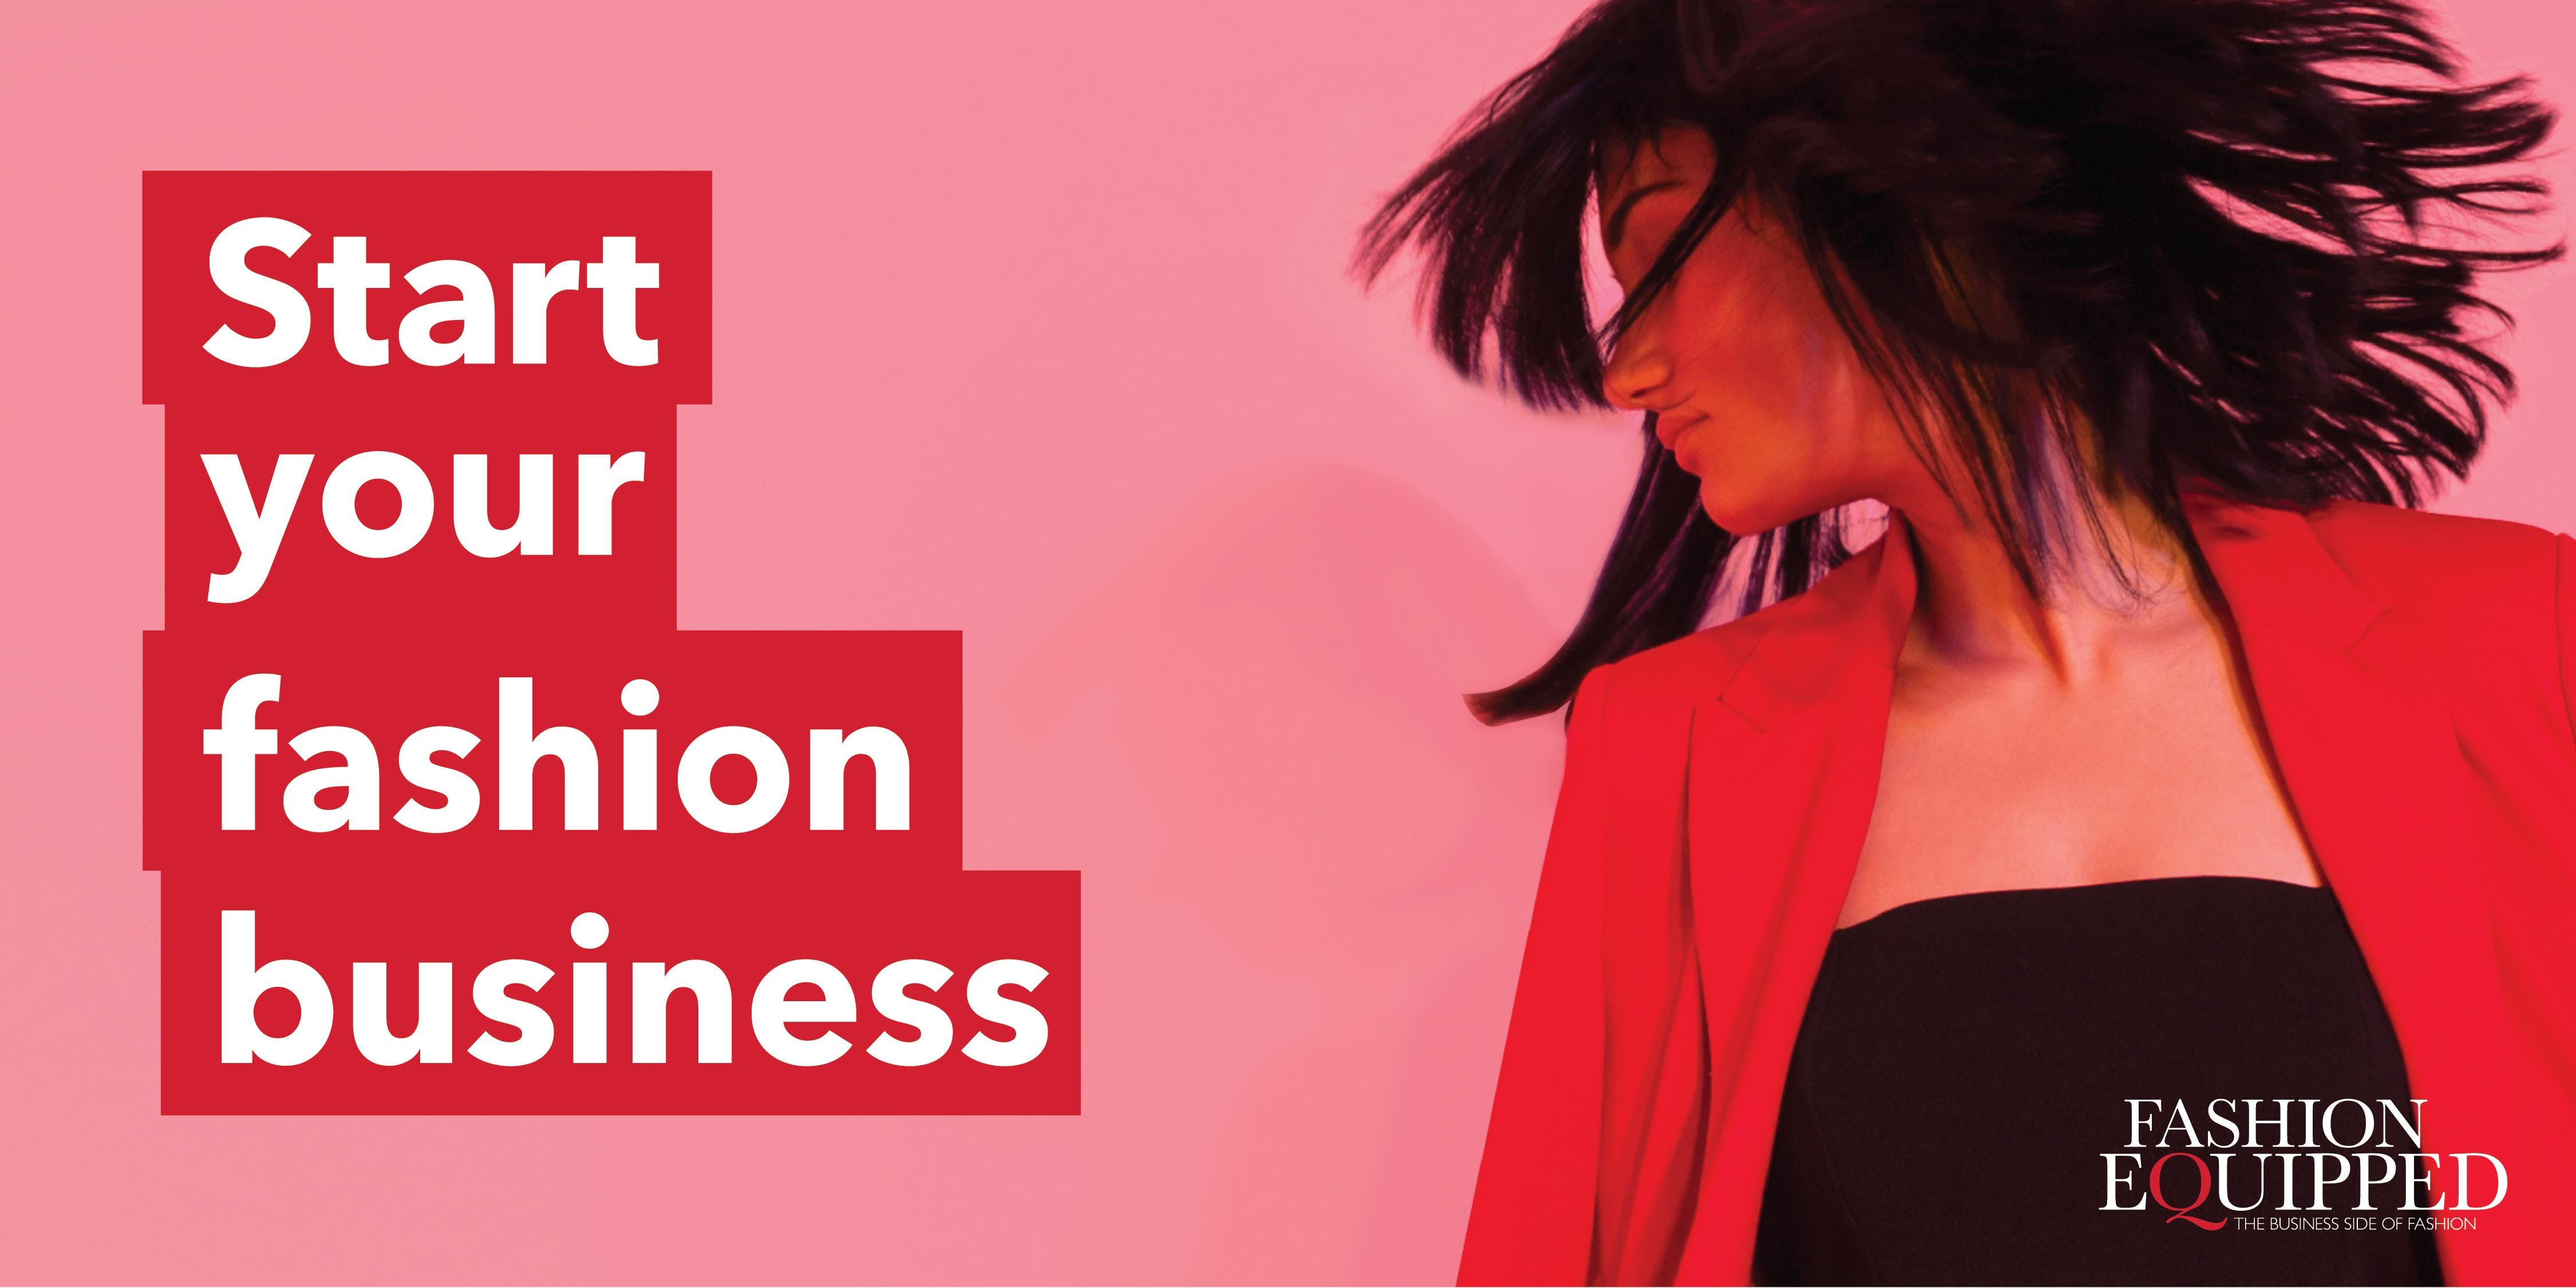 START YOUR FASHION BUSINESS Information + Net